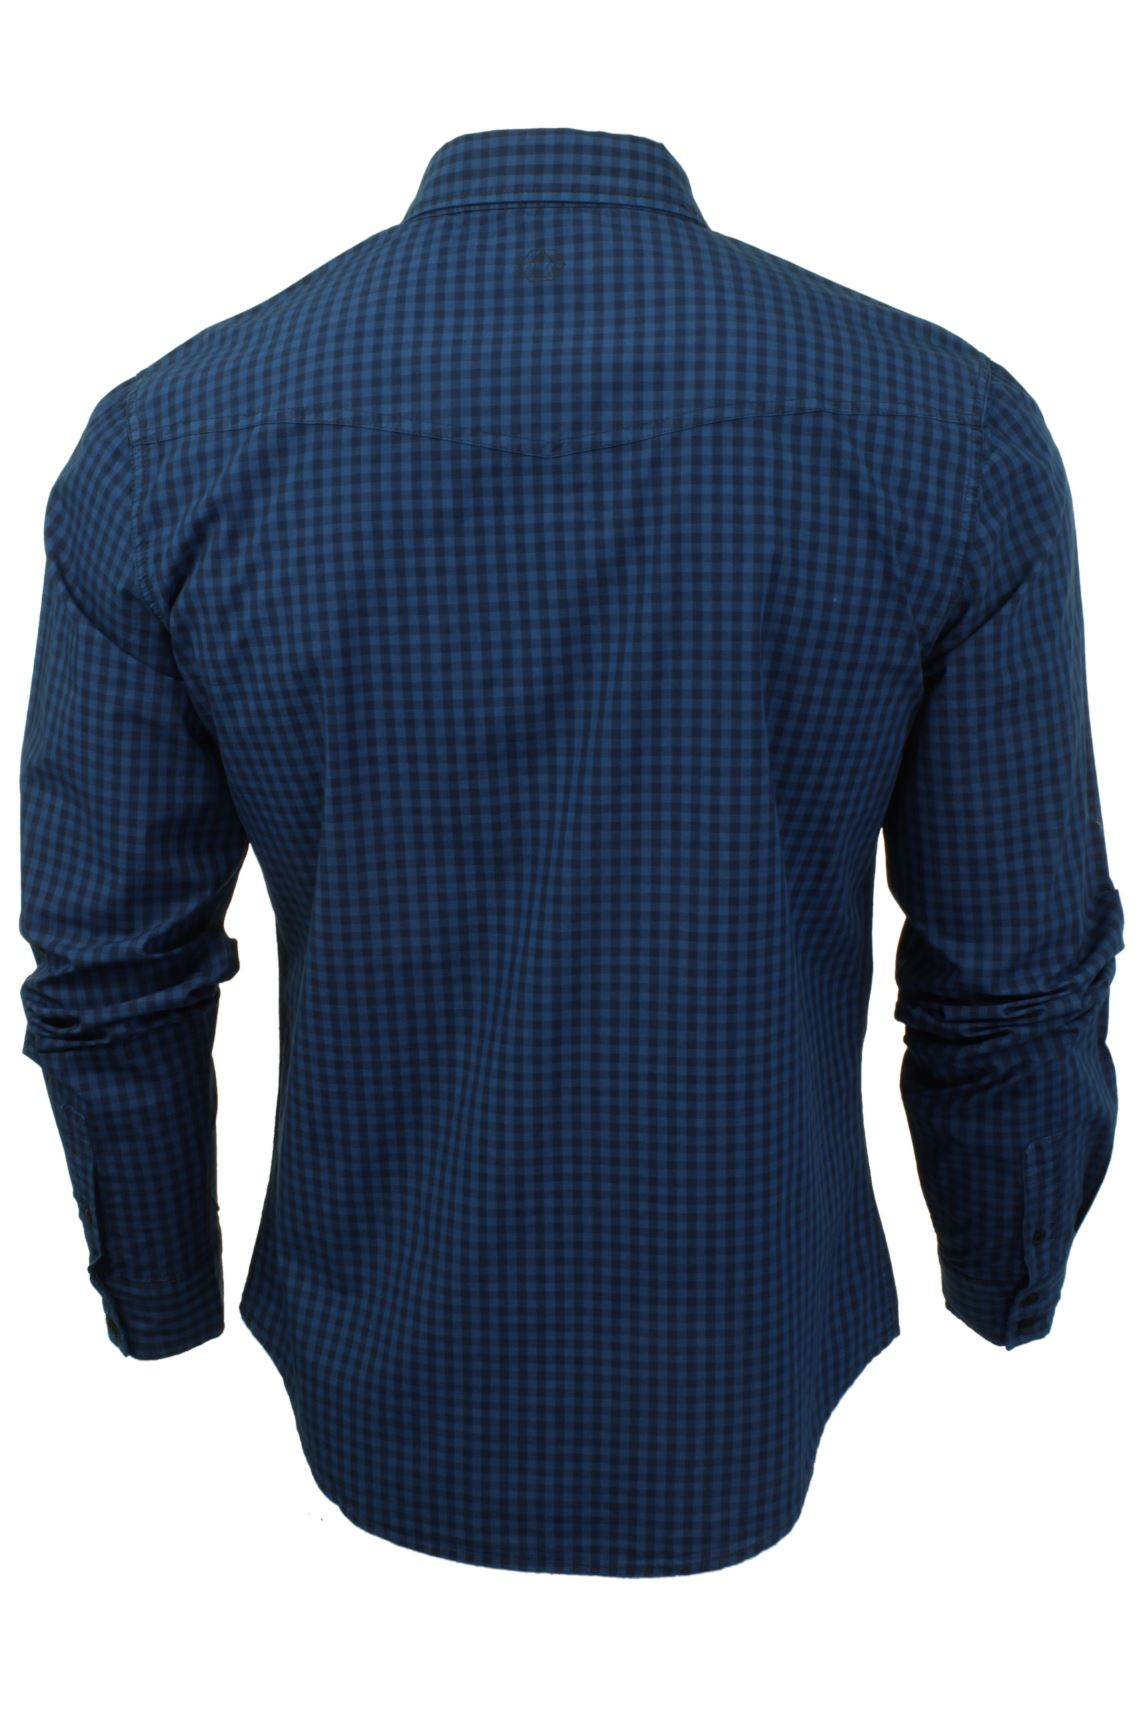 Mens-Check-Shirt-by-Smith-amp-Jones-039-Porticus-039-Long-Sleeved thumbnail 5